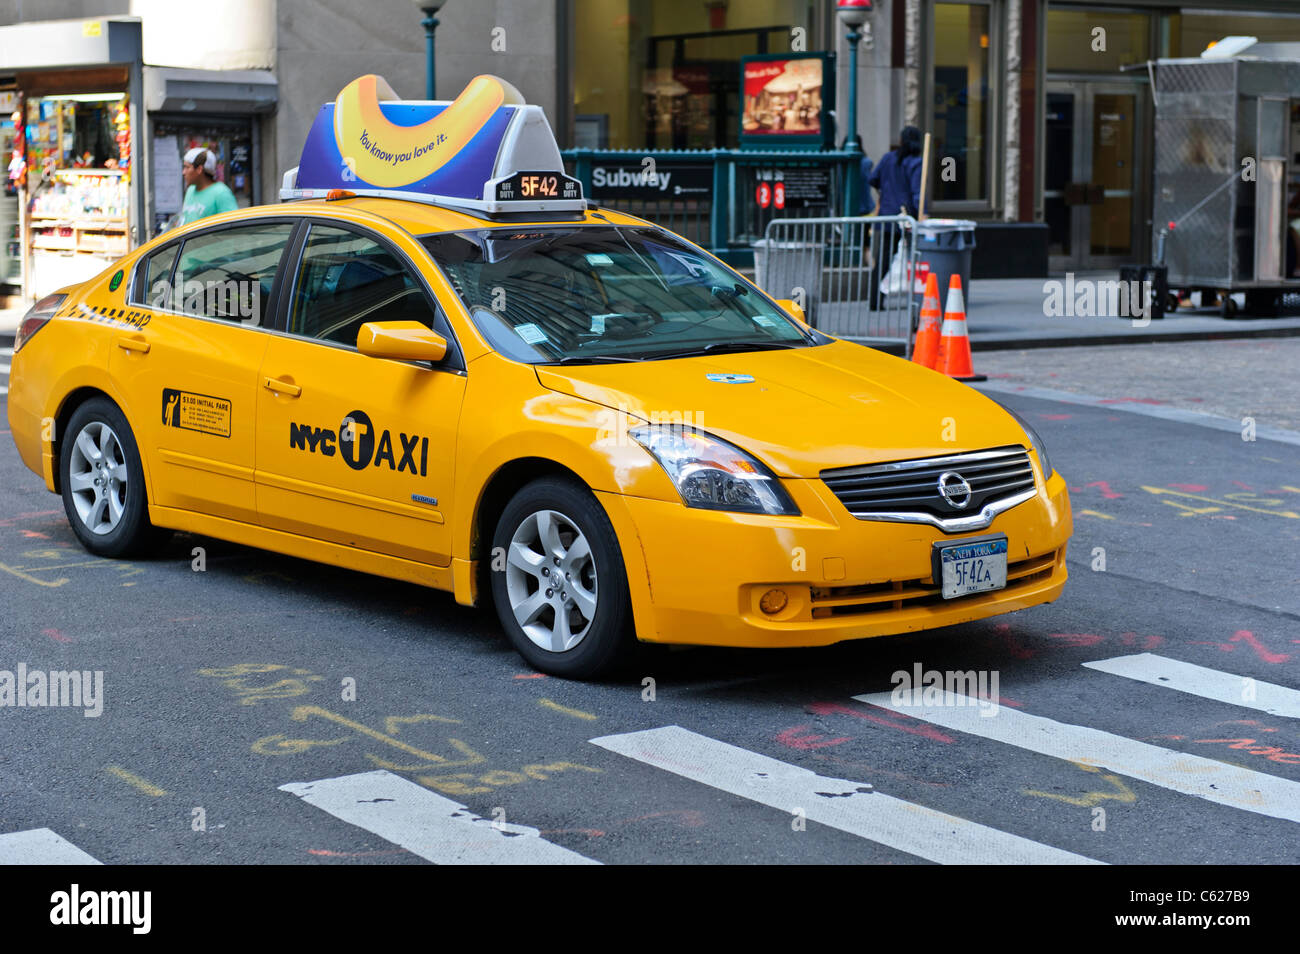 Taxi jaune, la ville de New York, Manhattan, États-Unis. Photo Stock